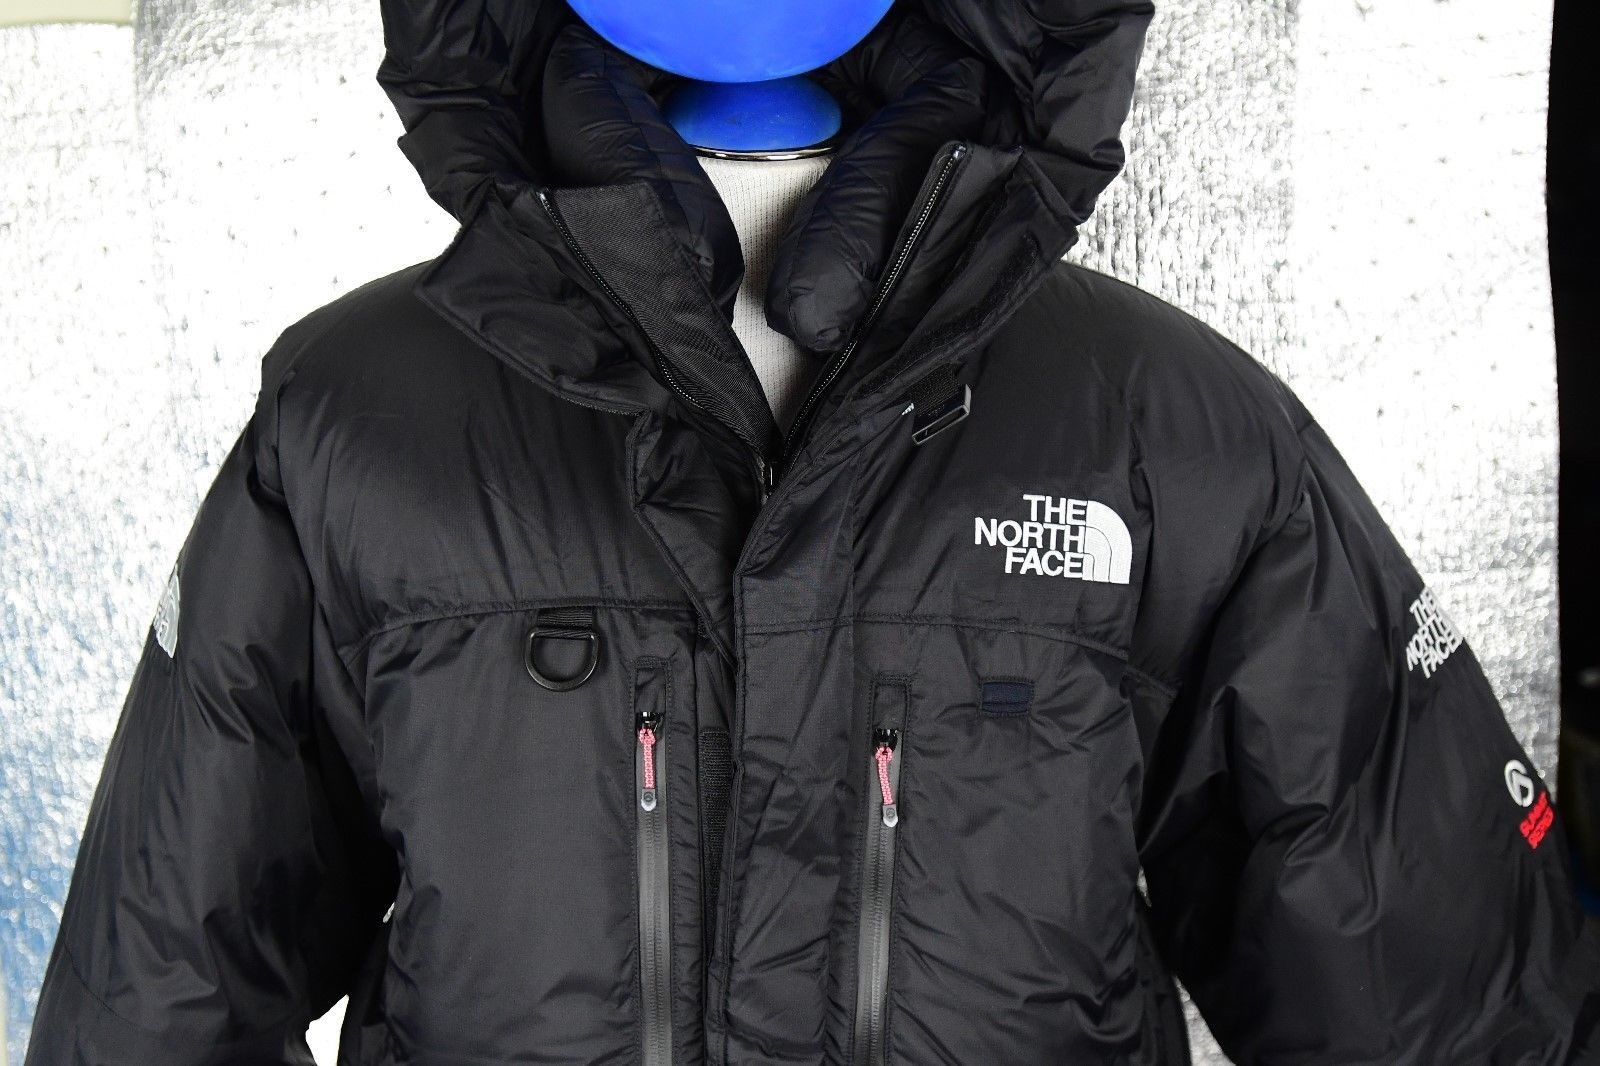 9595e2b1a NEW MEN'S THE NORTH FACE HIMALAYAN PARKA 800 DOWN SUMMIT SERIES ...